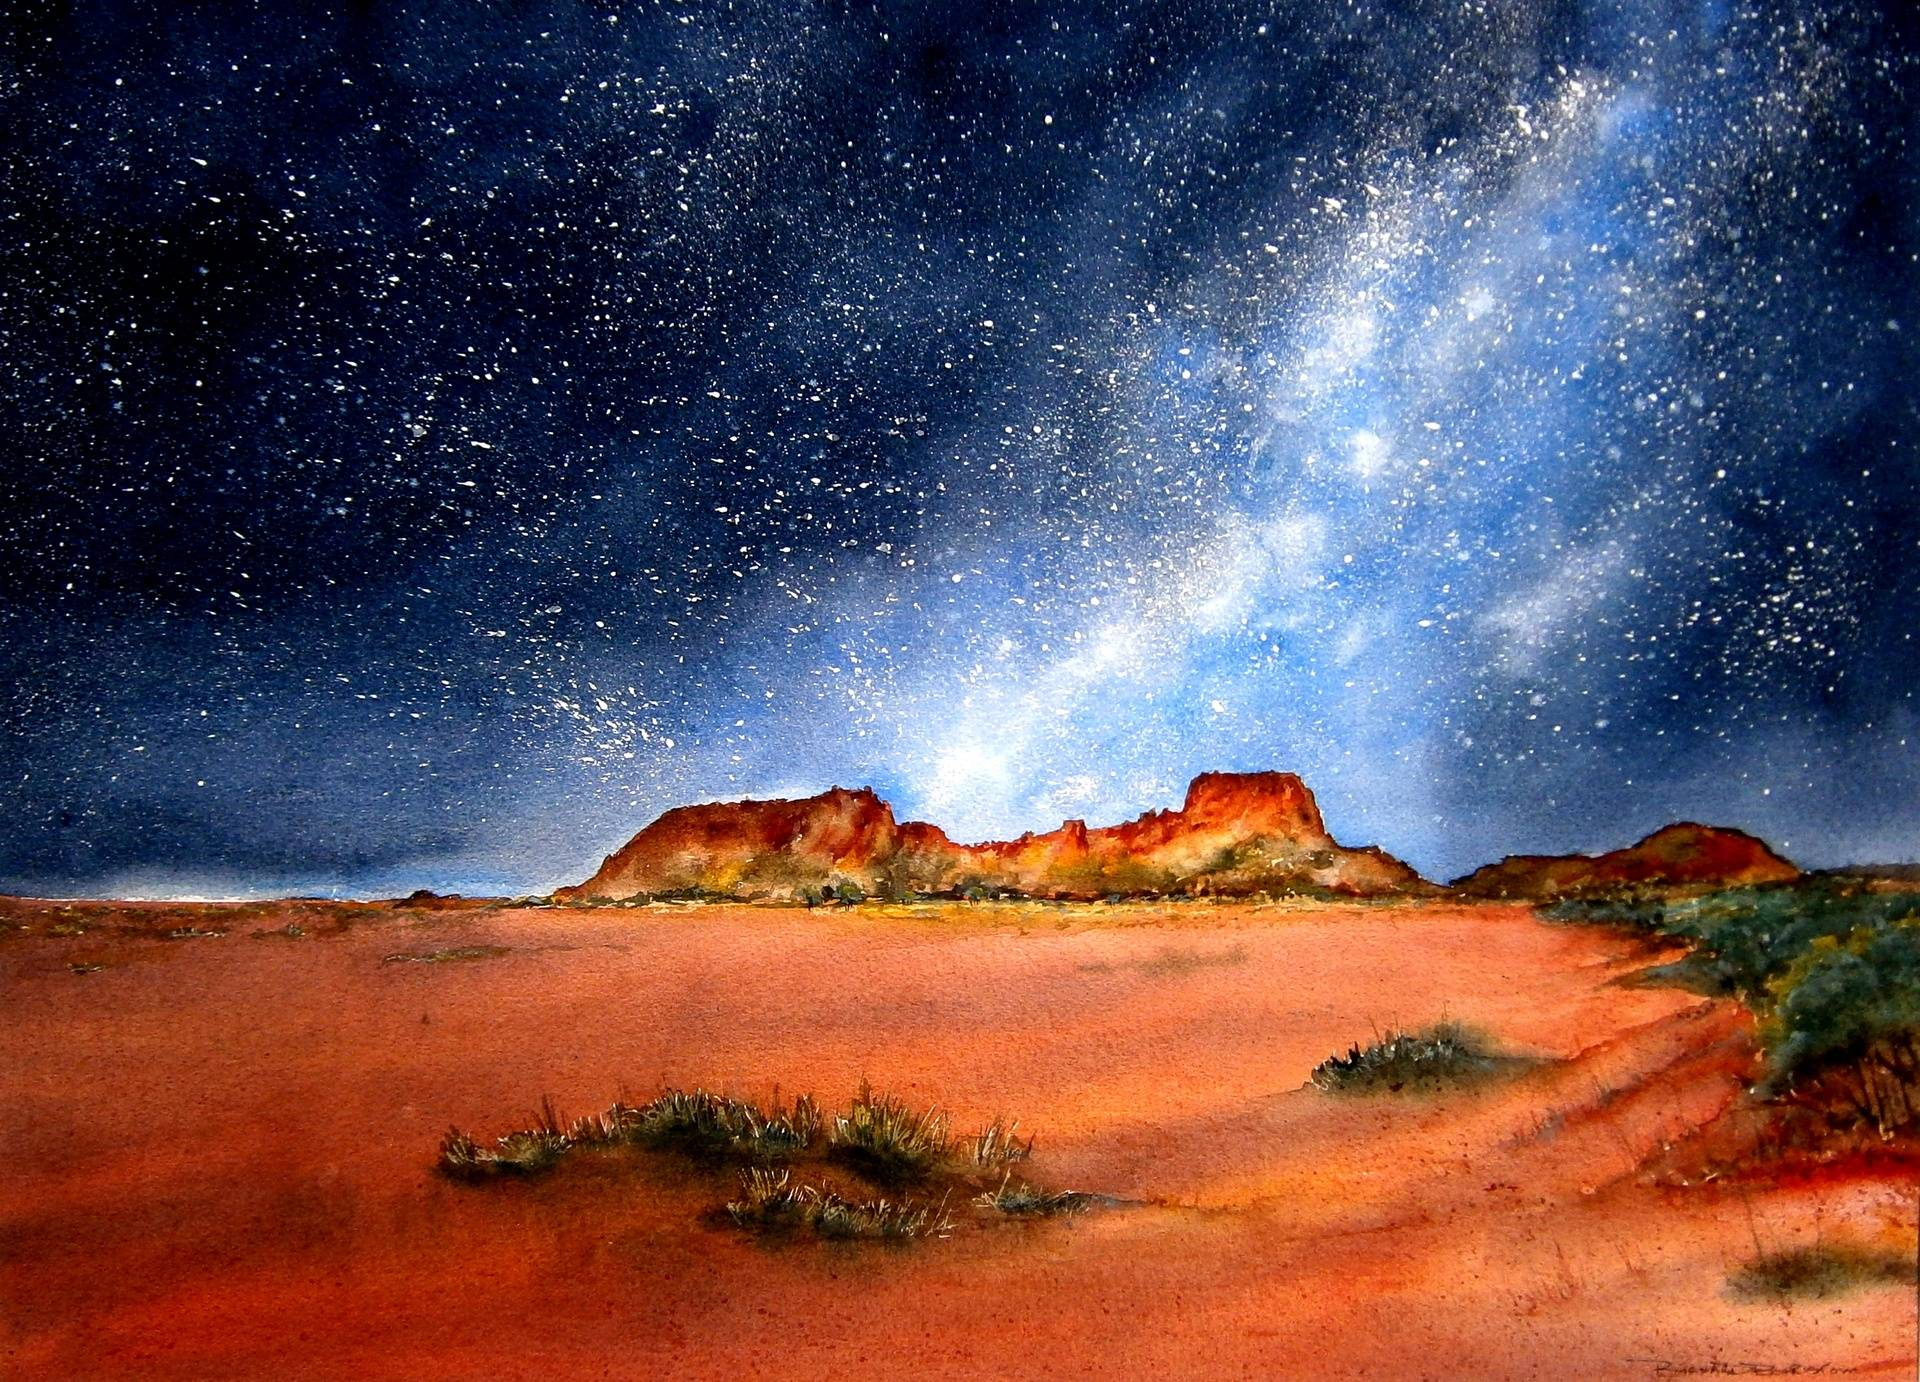 Outback Space